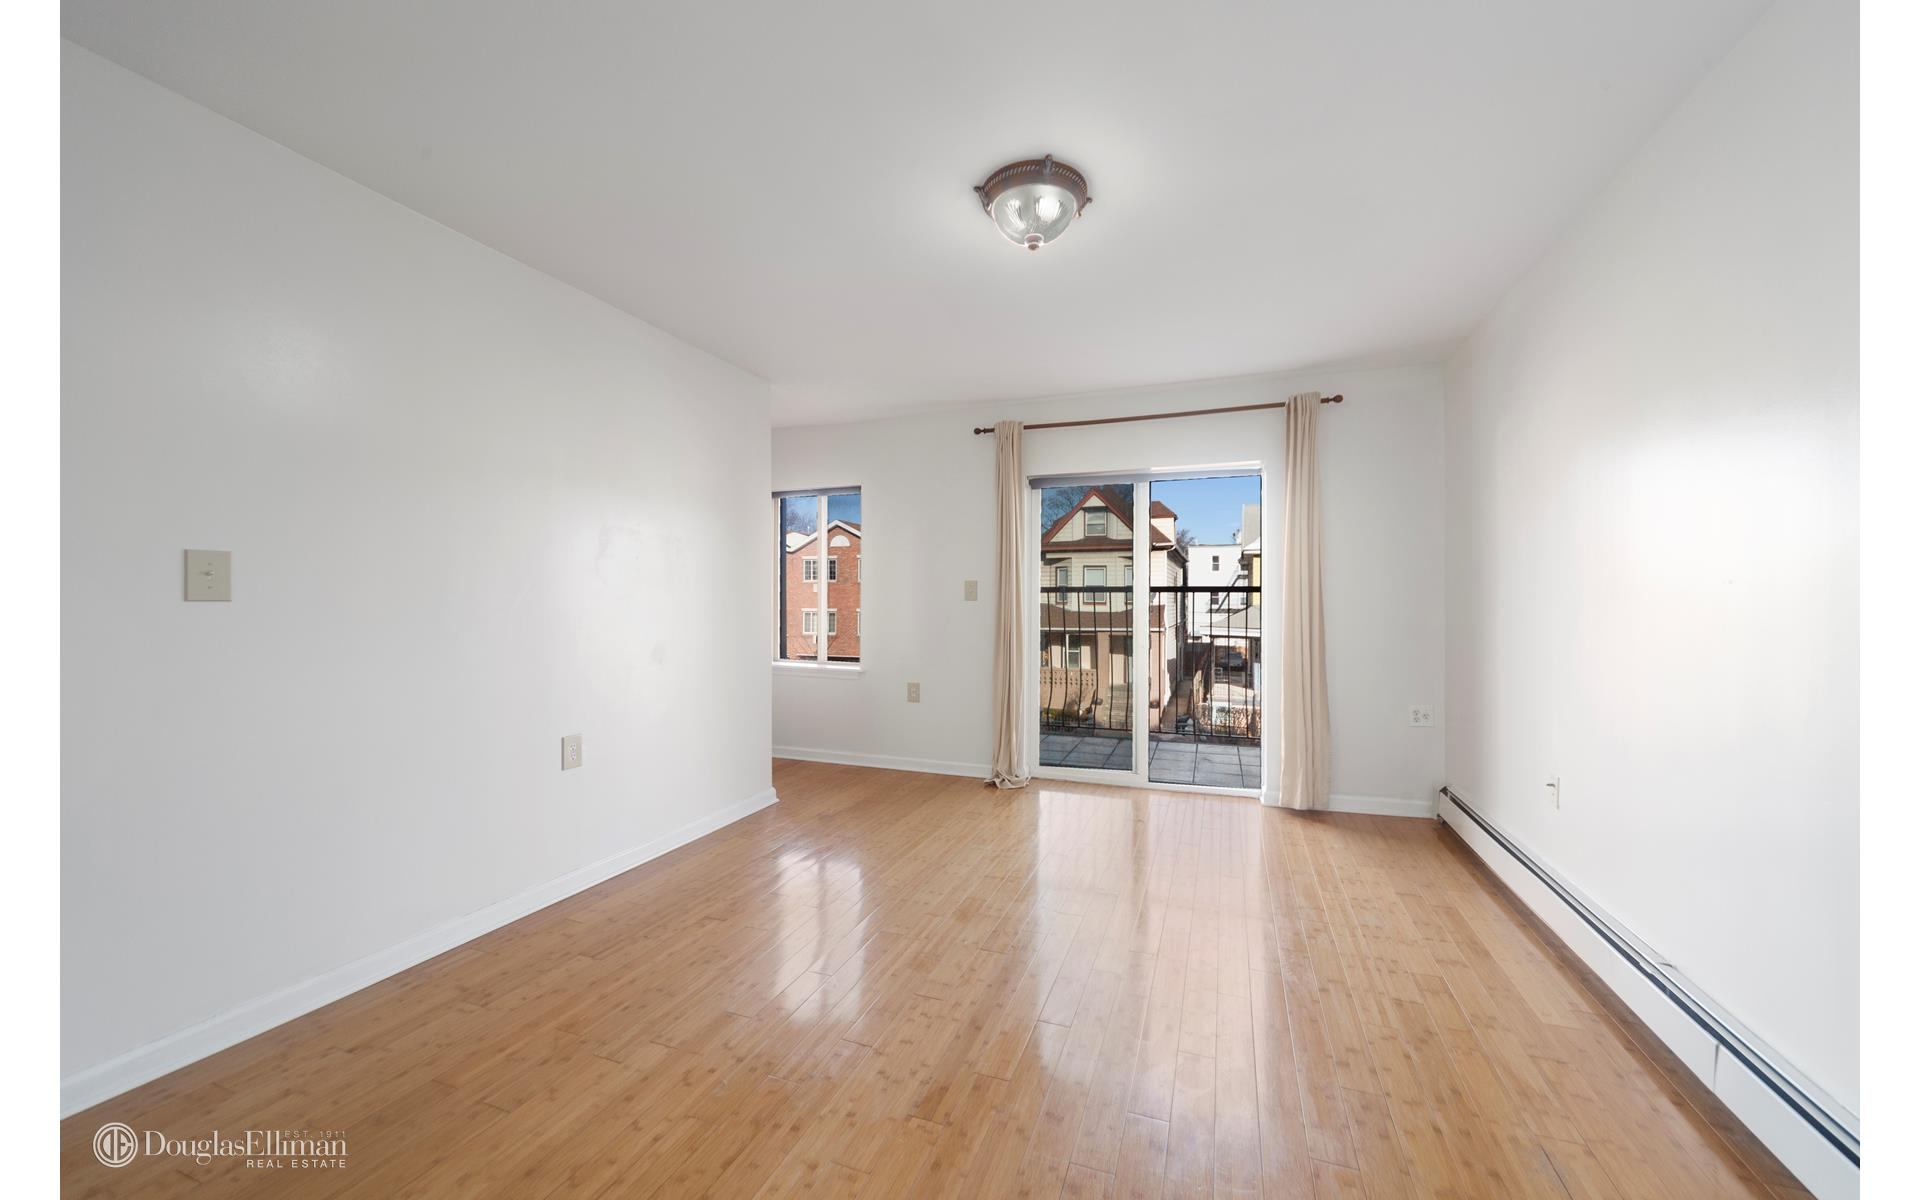 Prospect Lefferts Gardens 3 Bedroom Rental At 334 Fenimore St Brooklyn Ny 11225 2900 Apartable